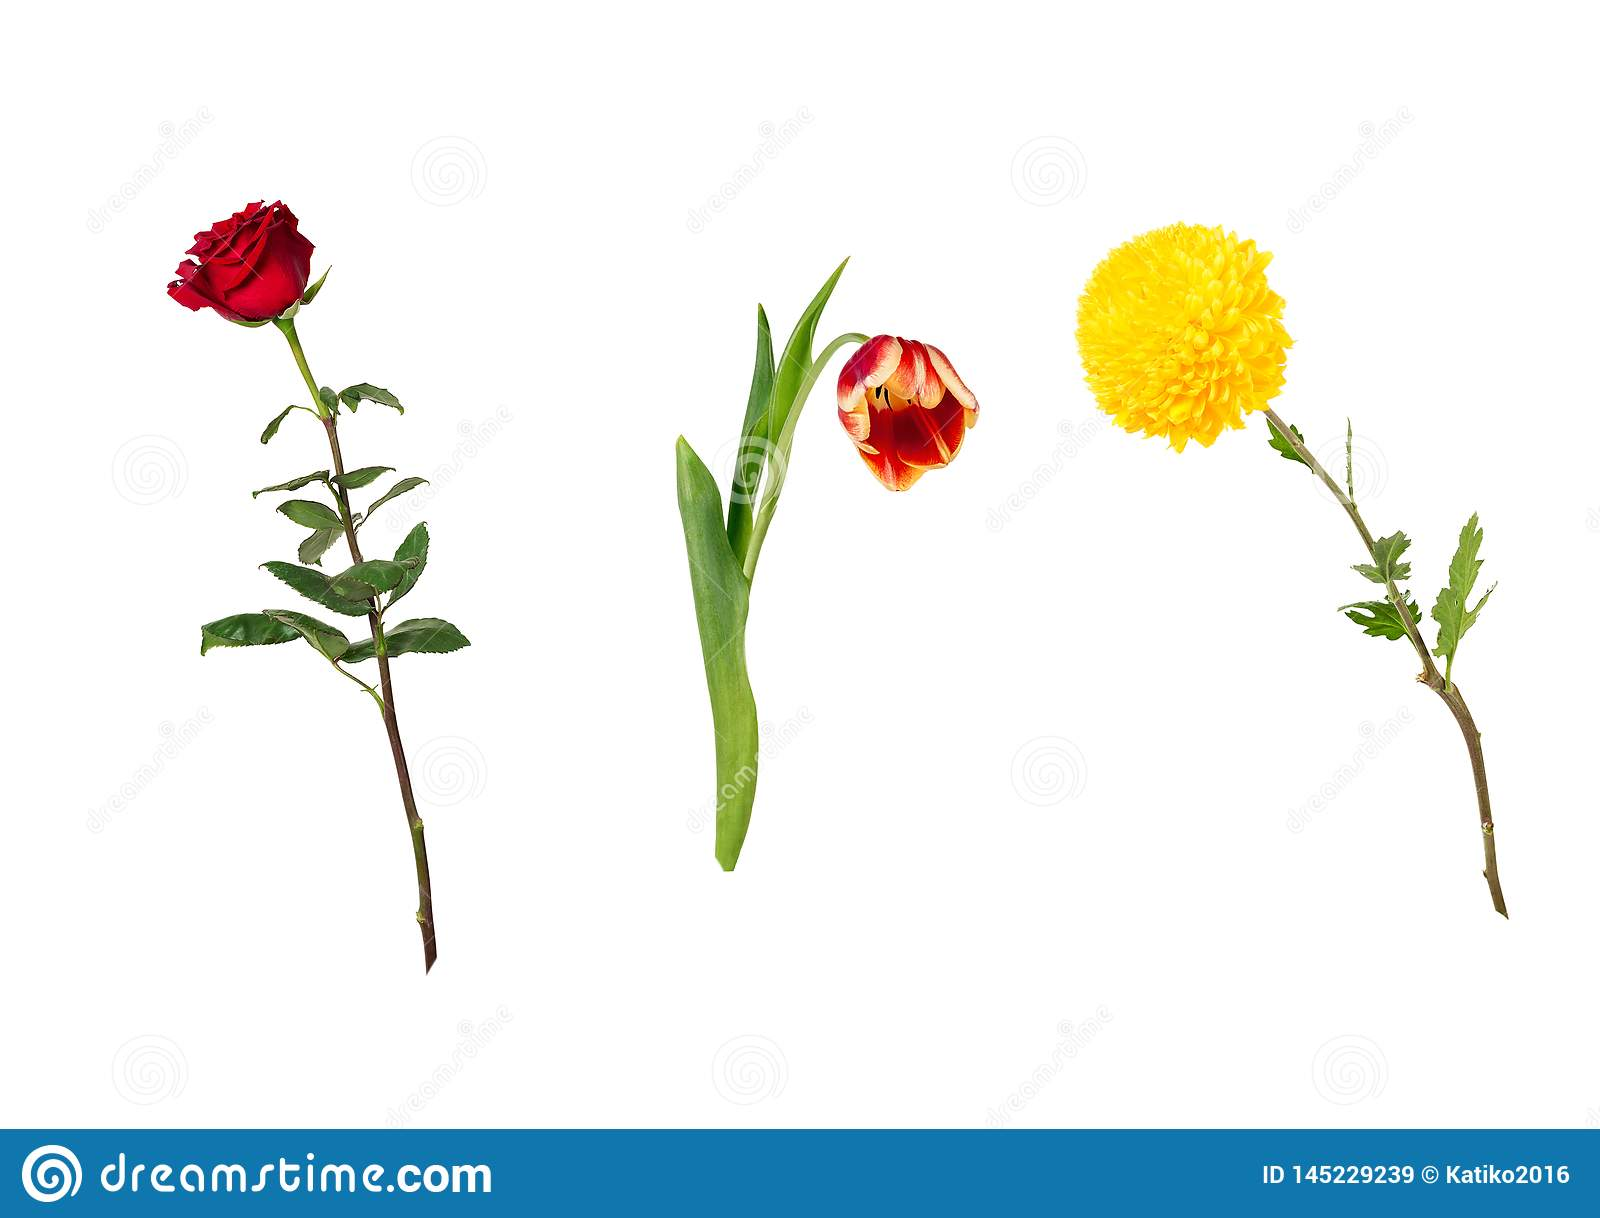 Beautiful floral set vivid red rose, bright yellow chrysanthemum, red and yellow tulip on stems with green leaves.